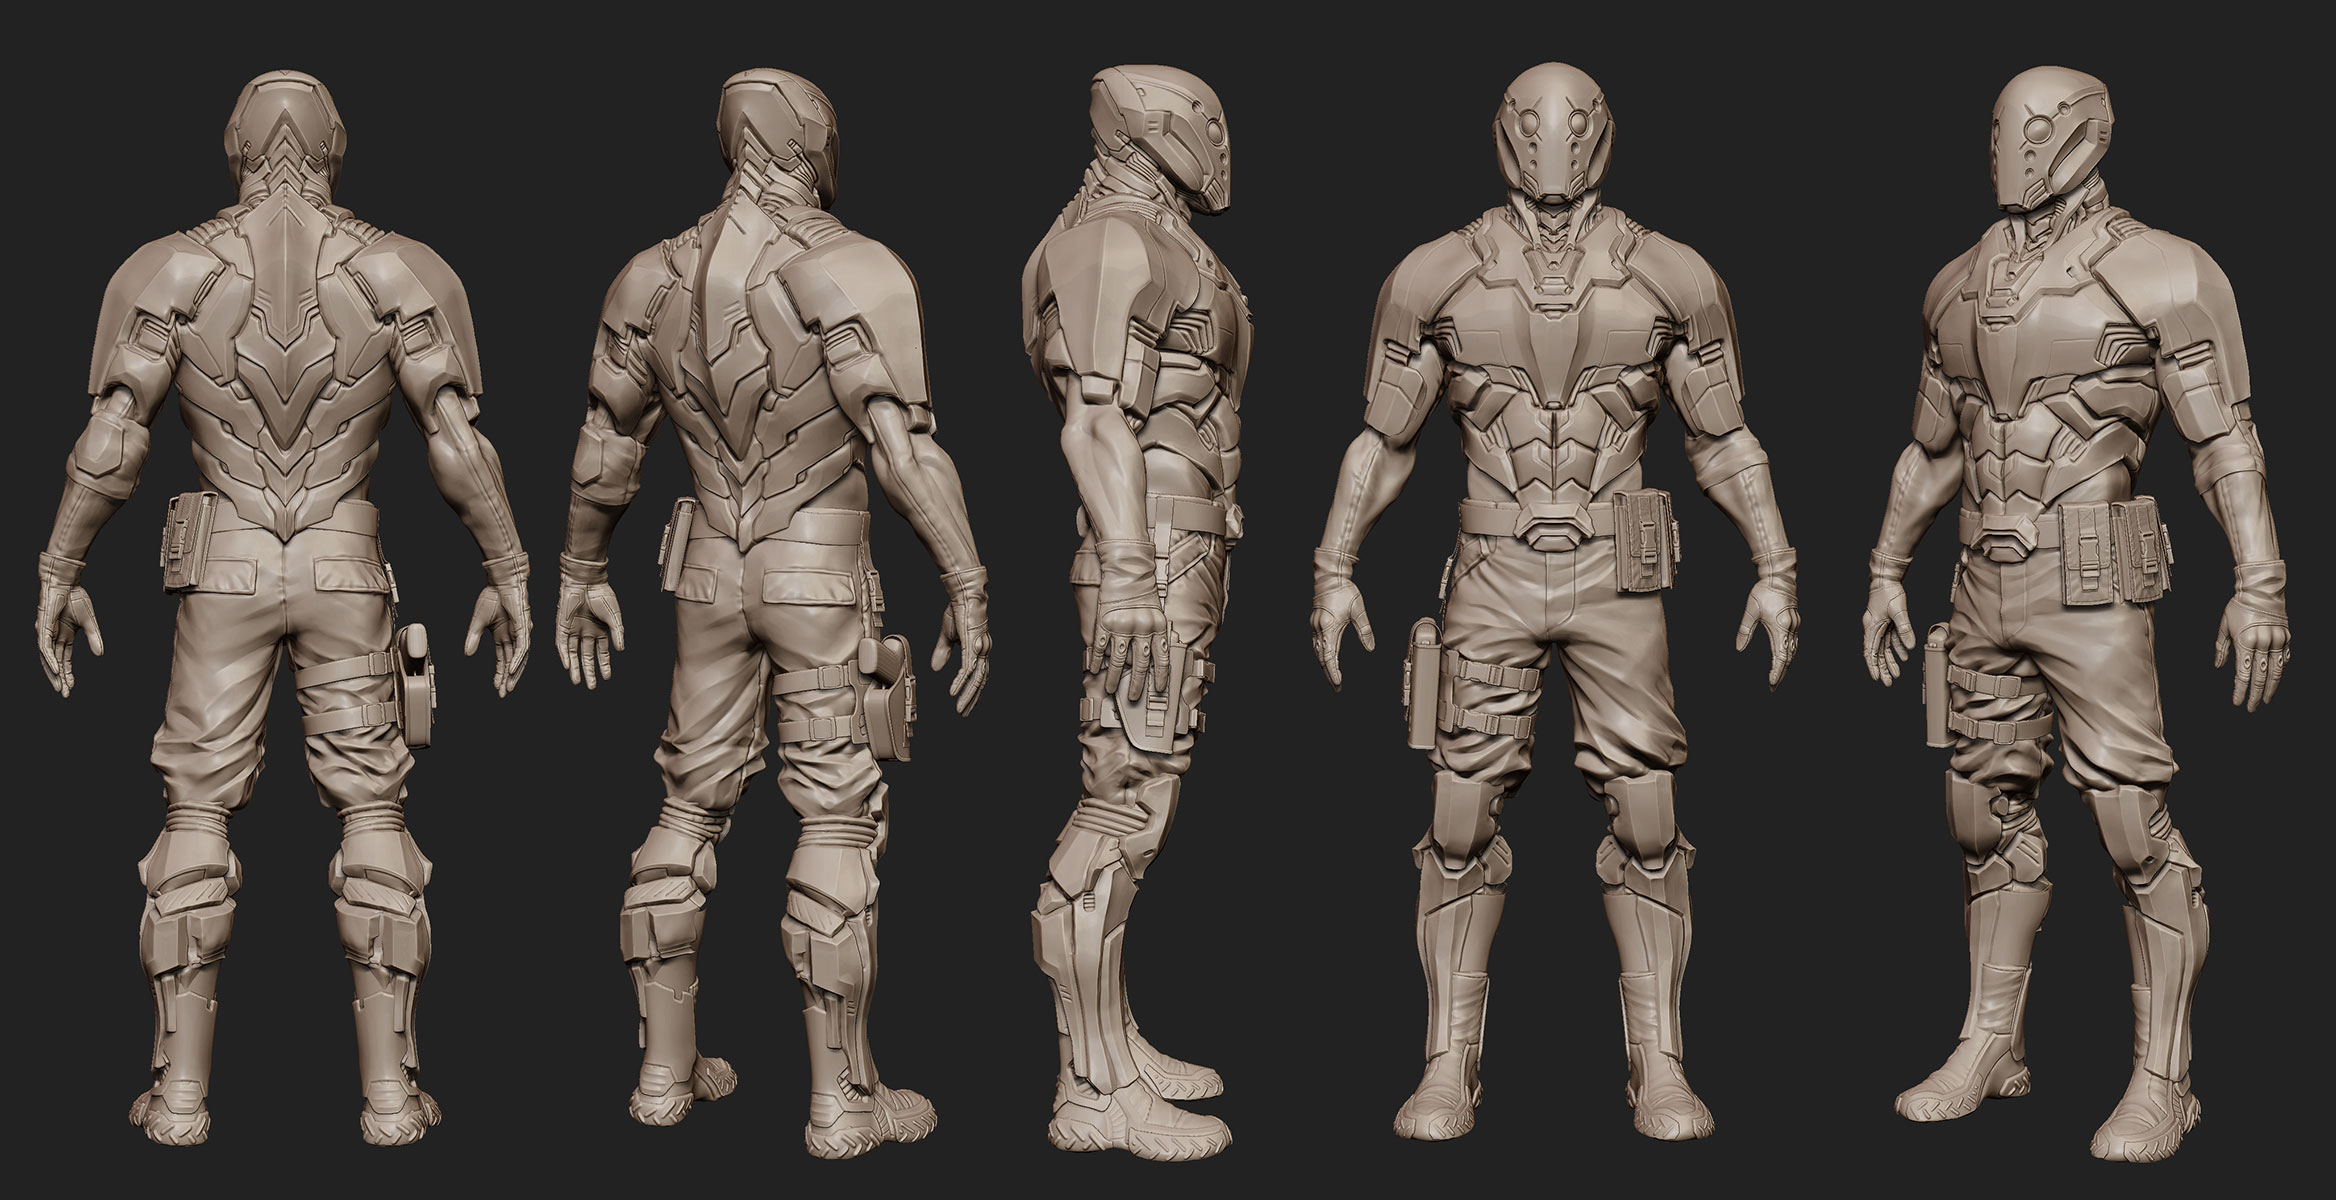 Soldier Concept by mojette